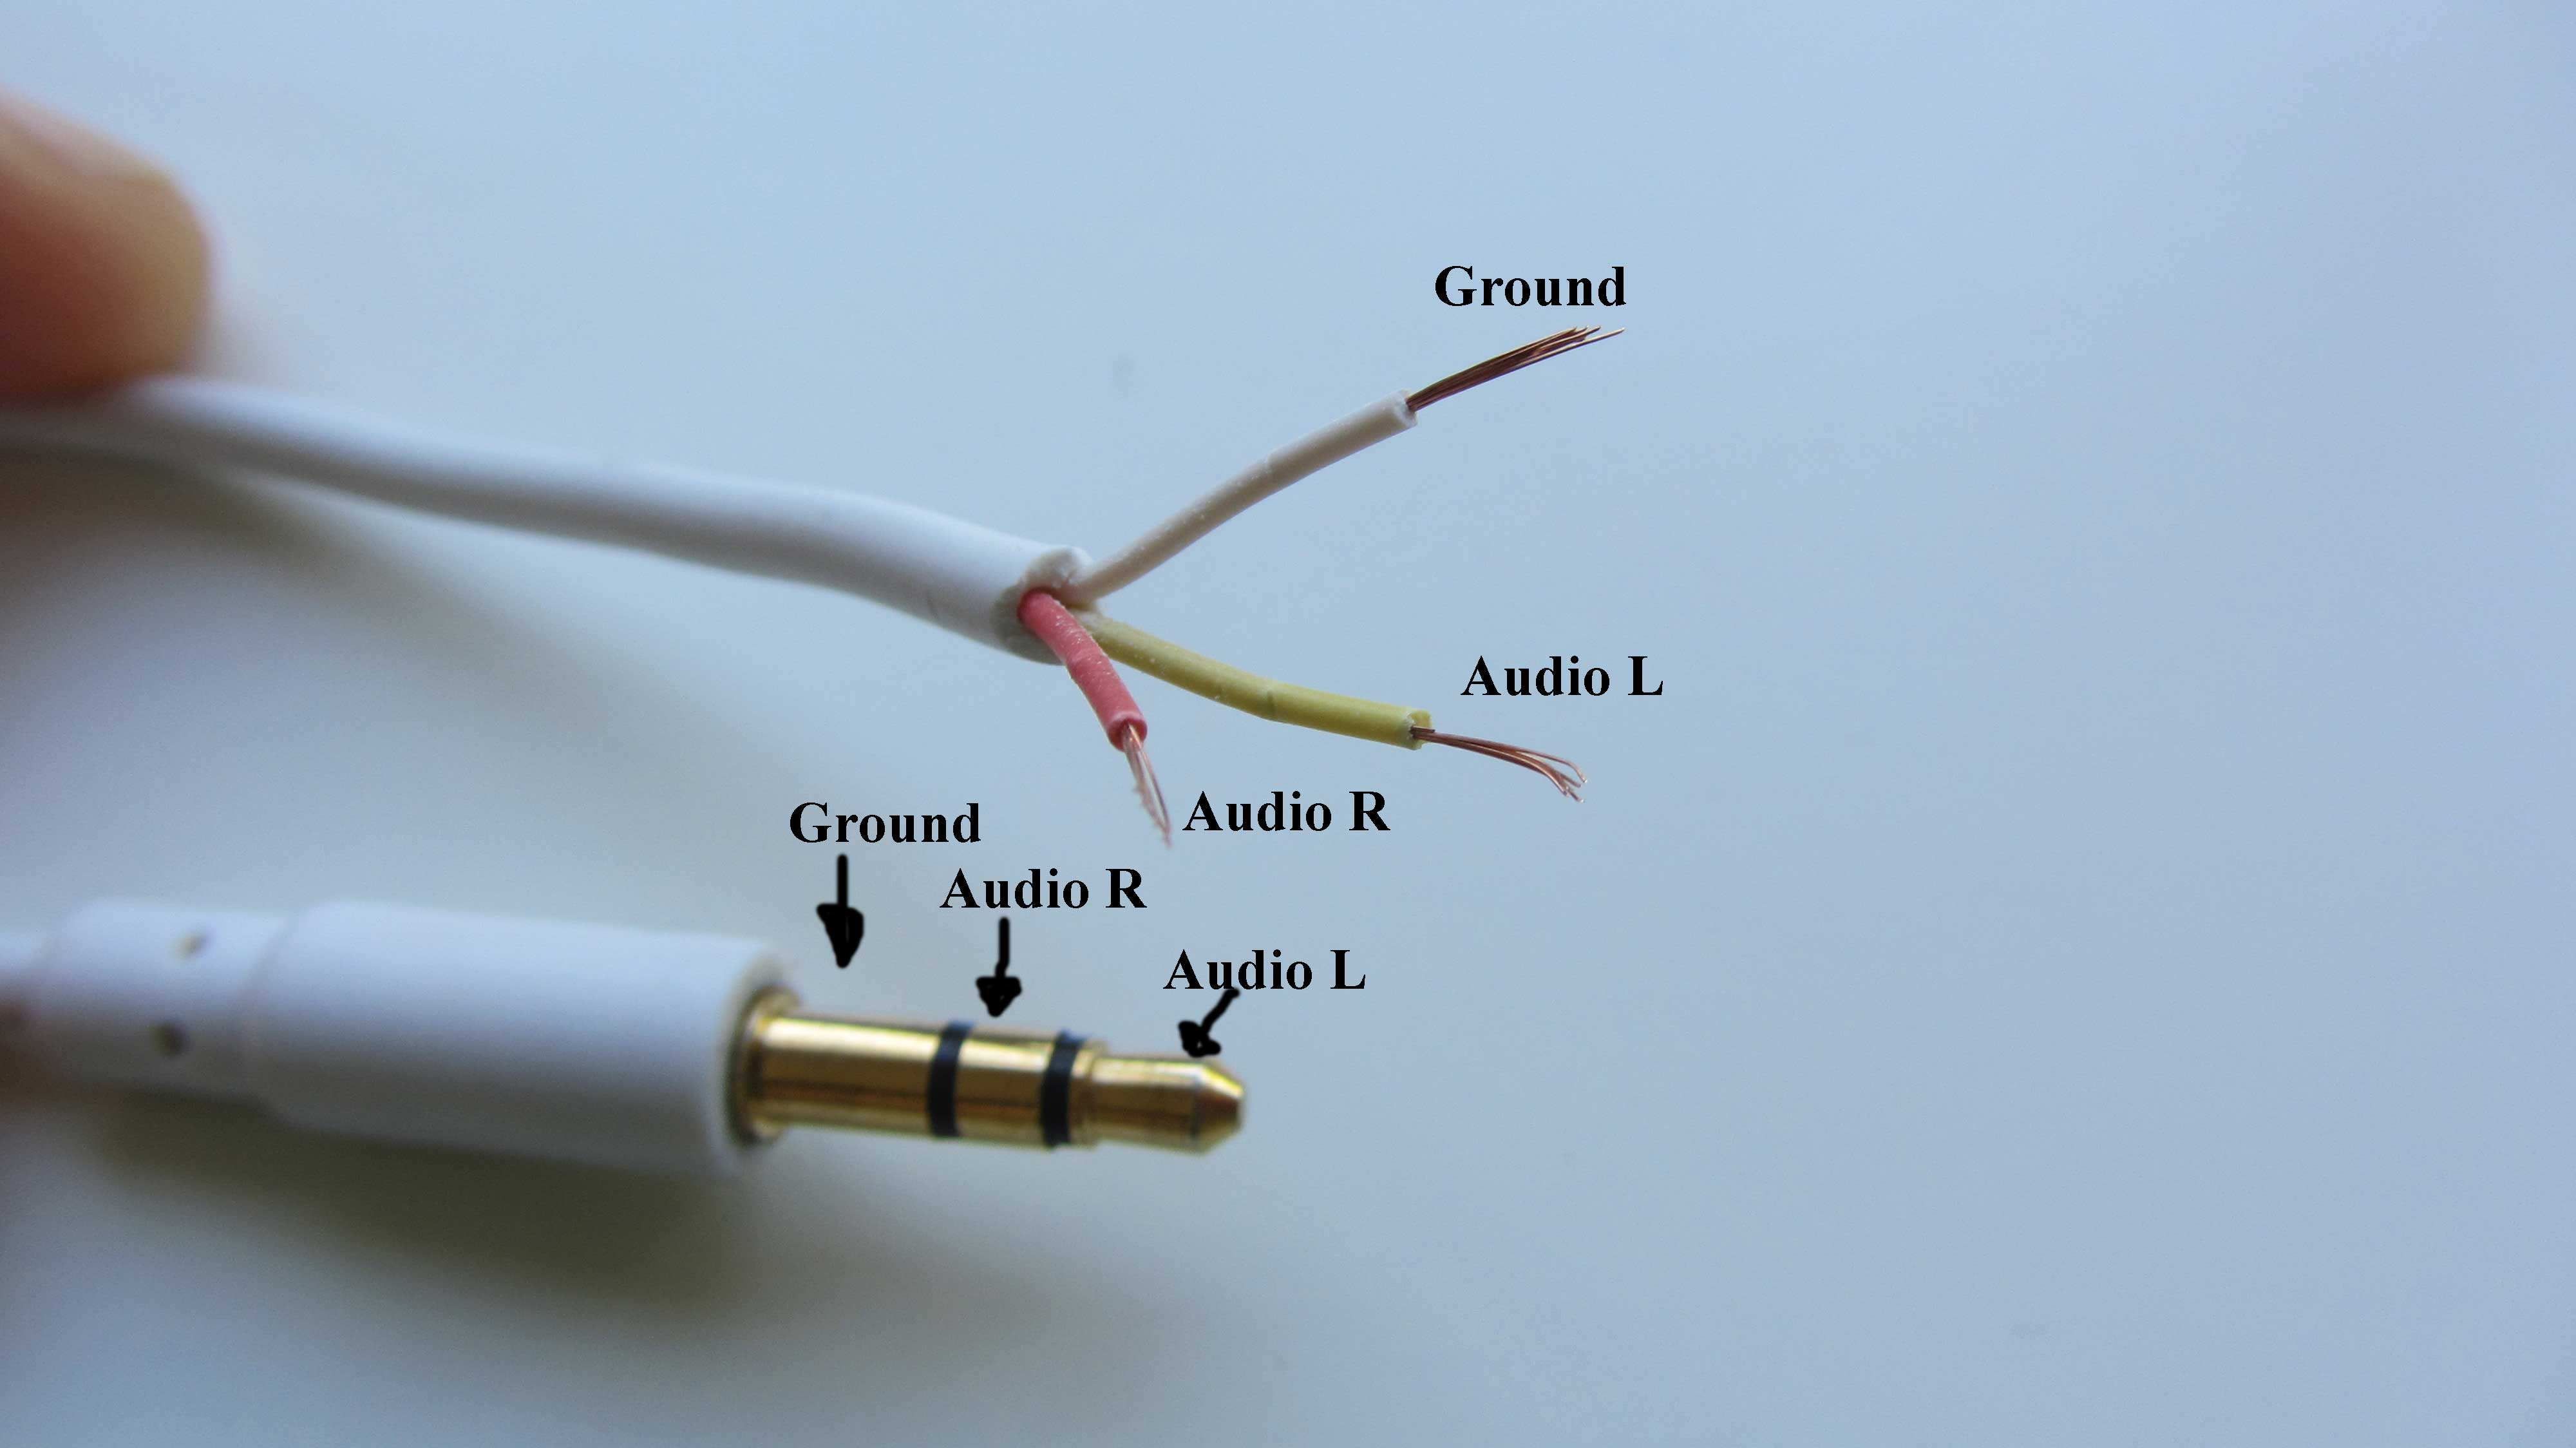 3 5mm Headphone Jack Wiring Diagram Diagrams Schematic Images Gallery